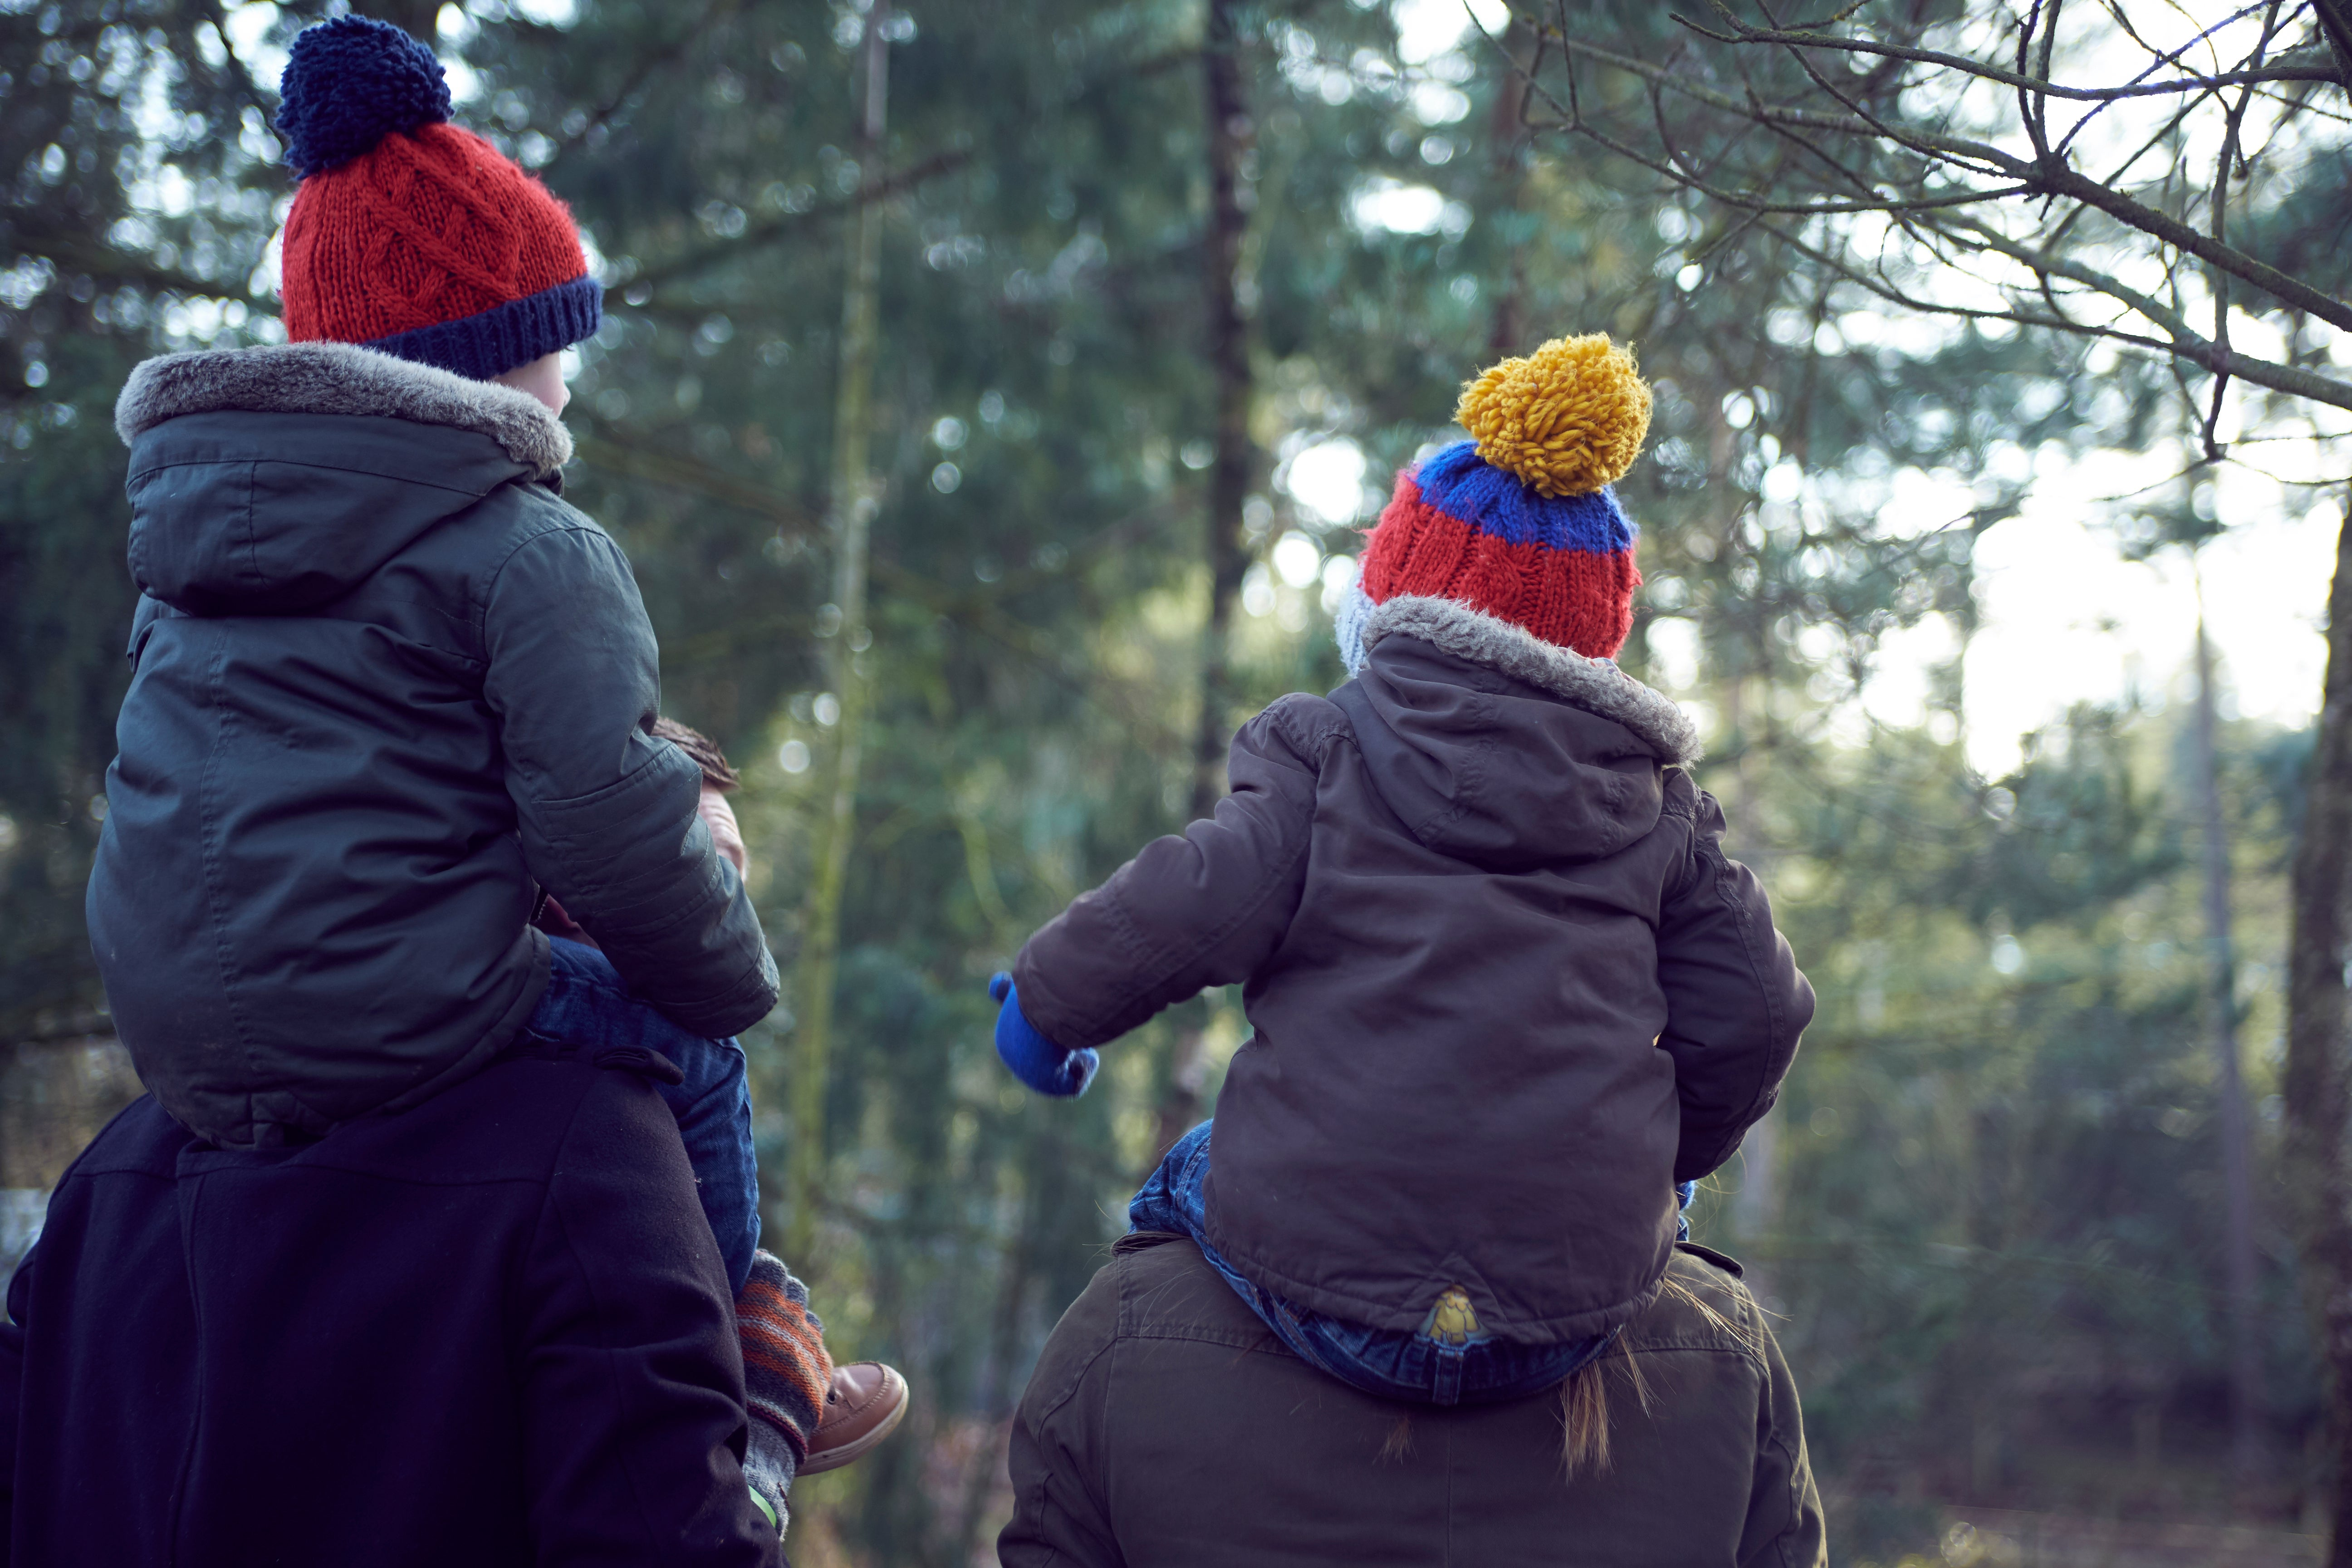 Family time at Center Parcs